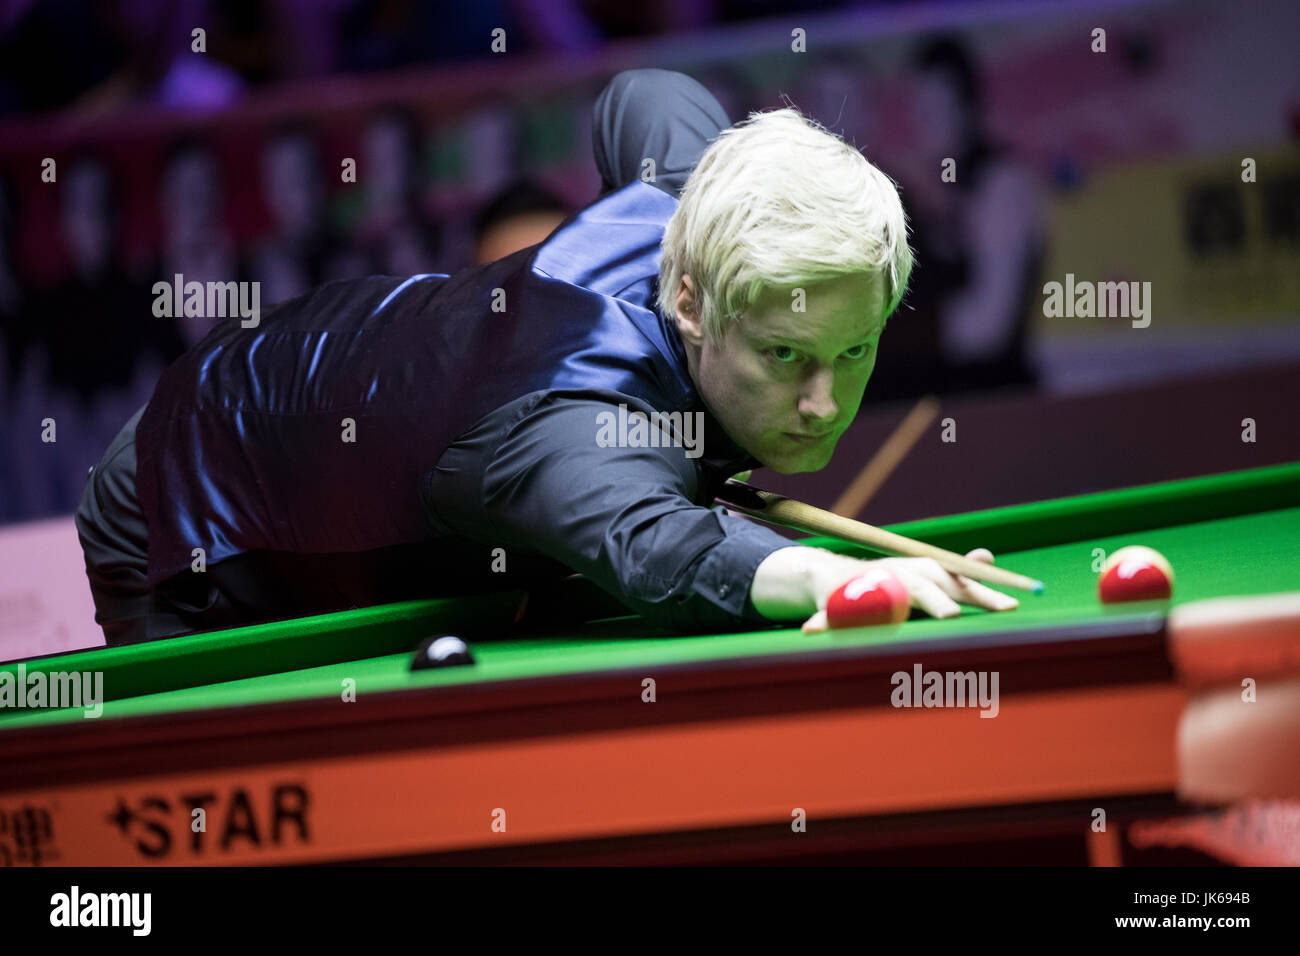 Hong Kong, Hong Kong. 22nd July 2017. Neil Robertson of Australia plays a shot during the semi-final match against - Stock Image